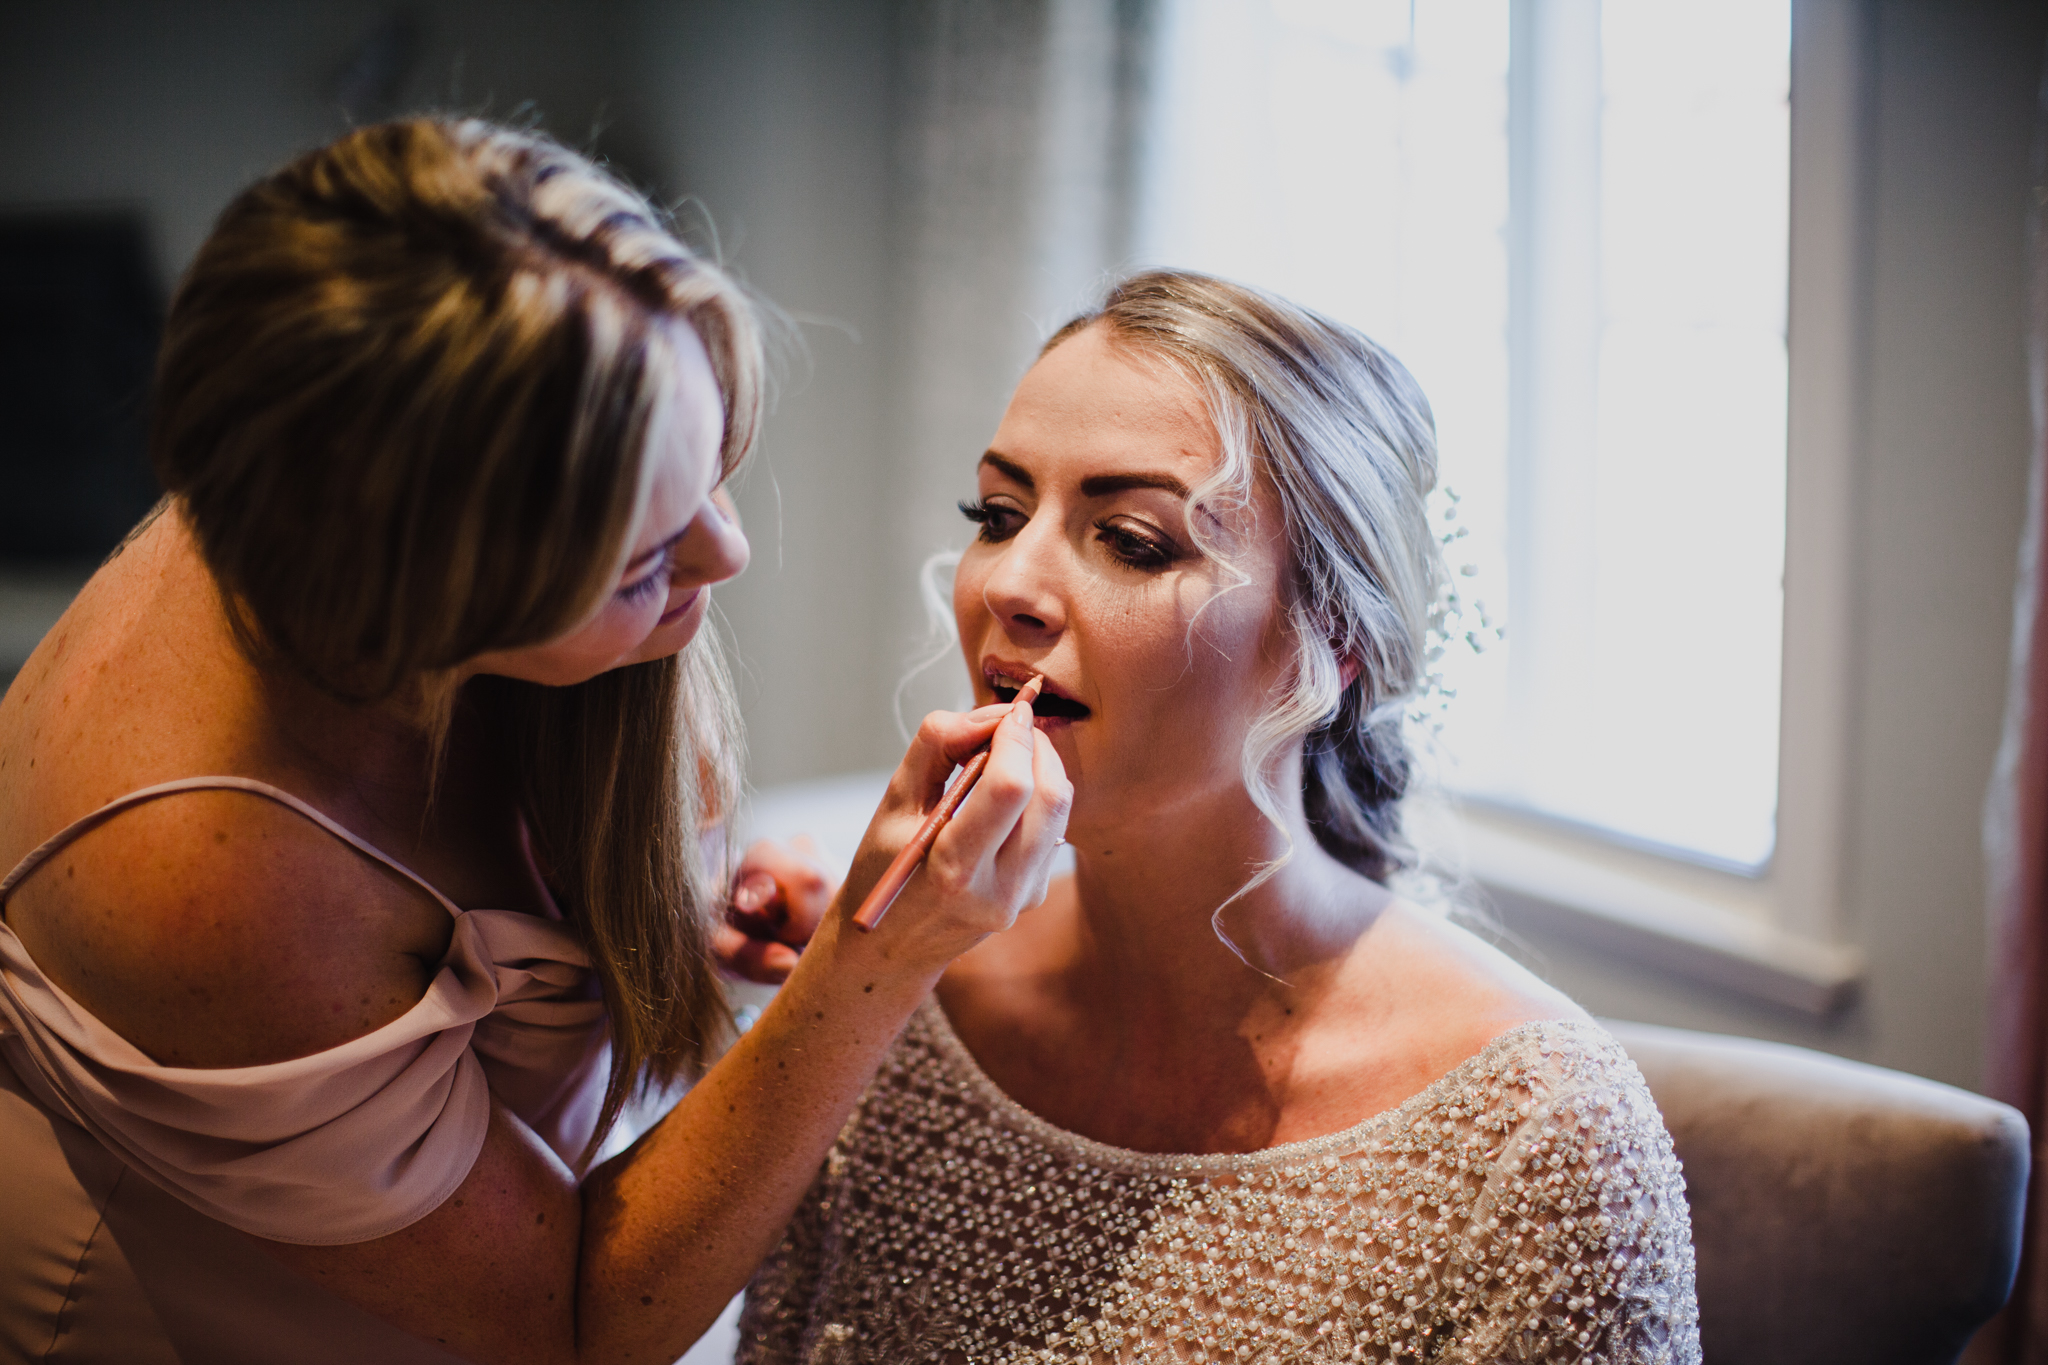 Bride at the Montague arms having her makeup done